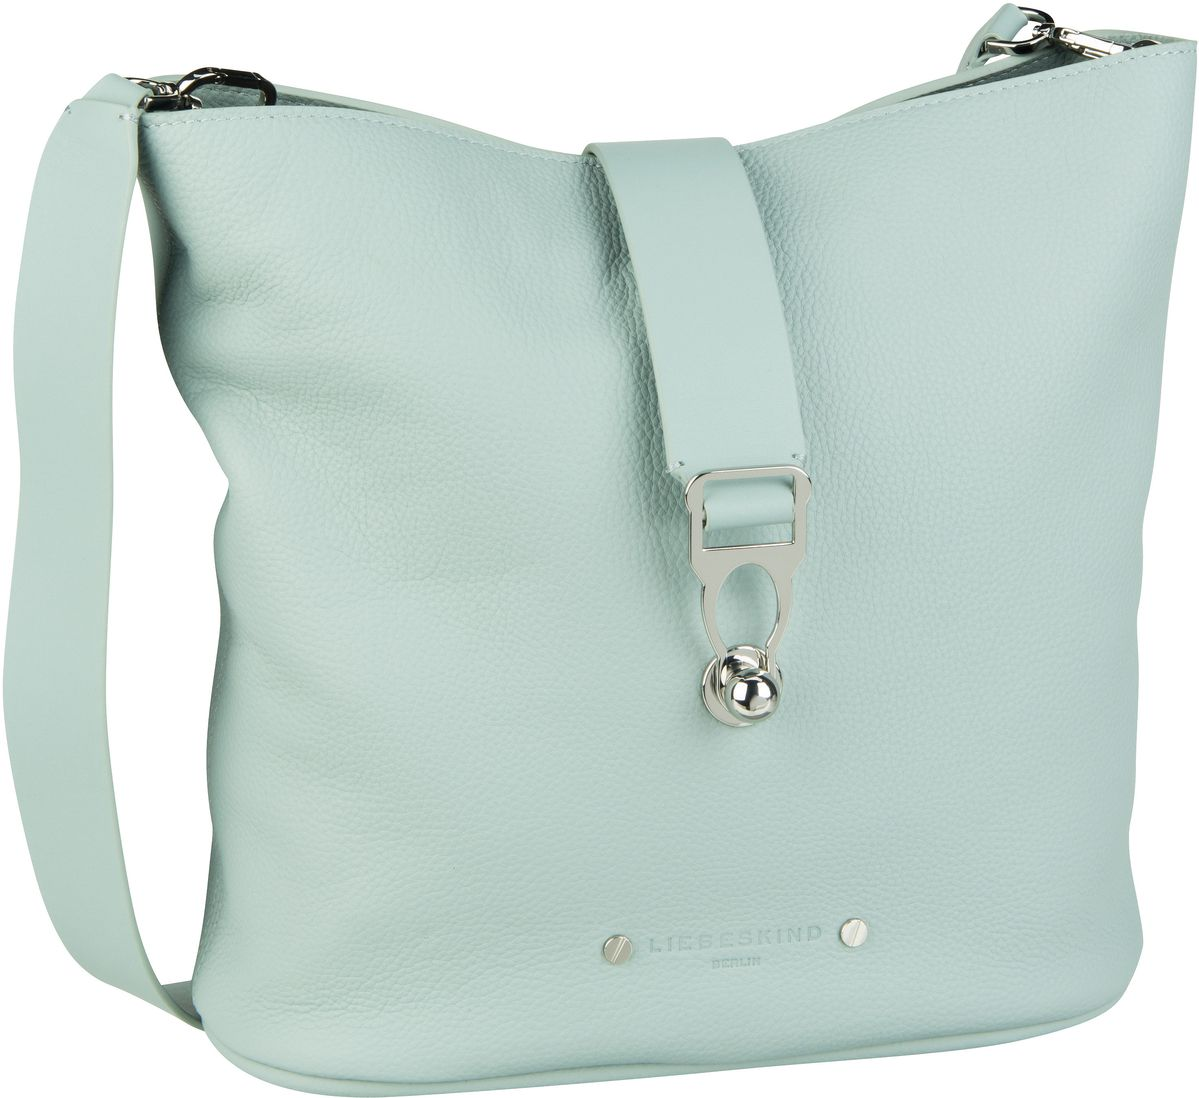 Berlin Umhängetasche Sailor Crossbody L Light Blue Mist